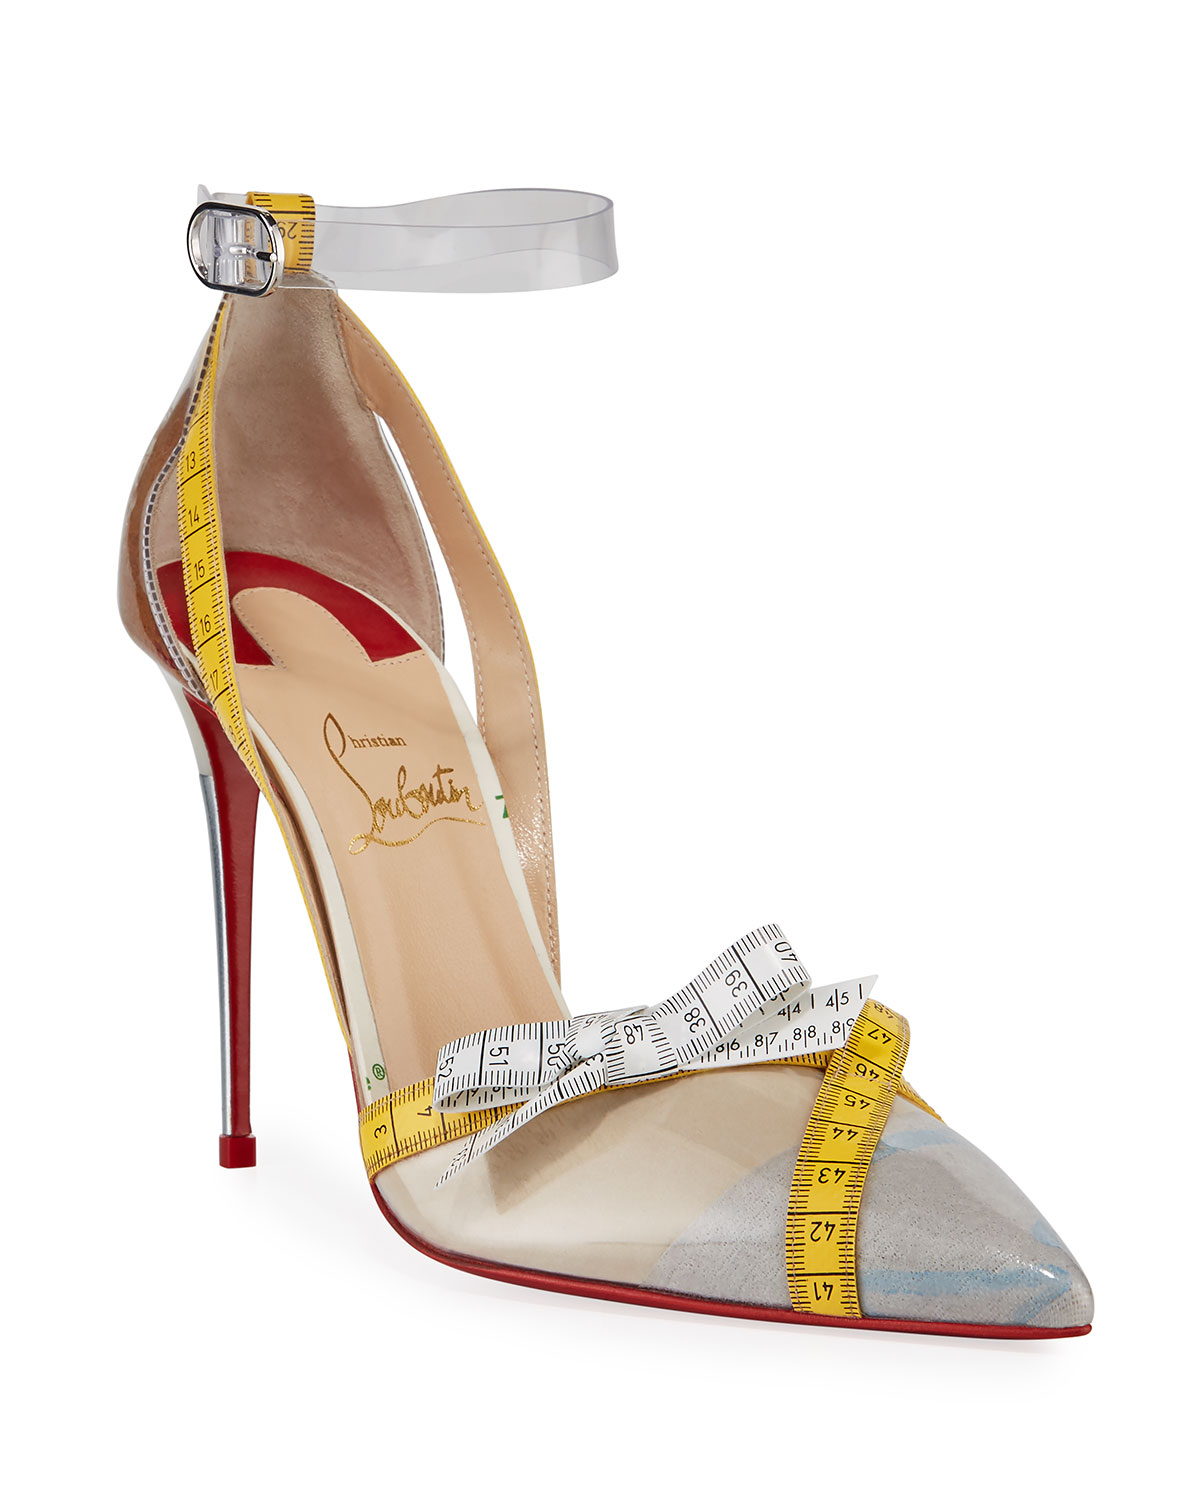 843d29a6421 Christian Louboutin Metripump Measuring Tape Patent Red Sole Pumps ...